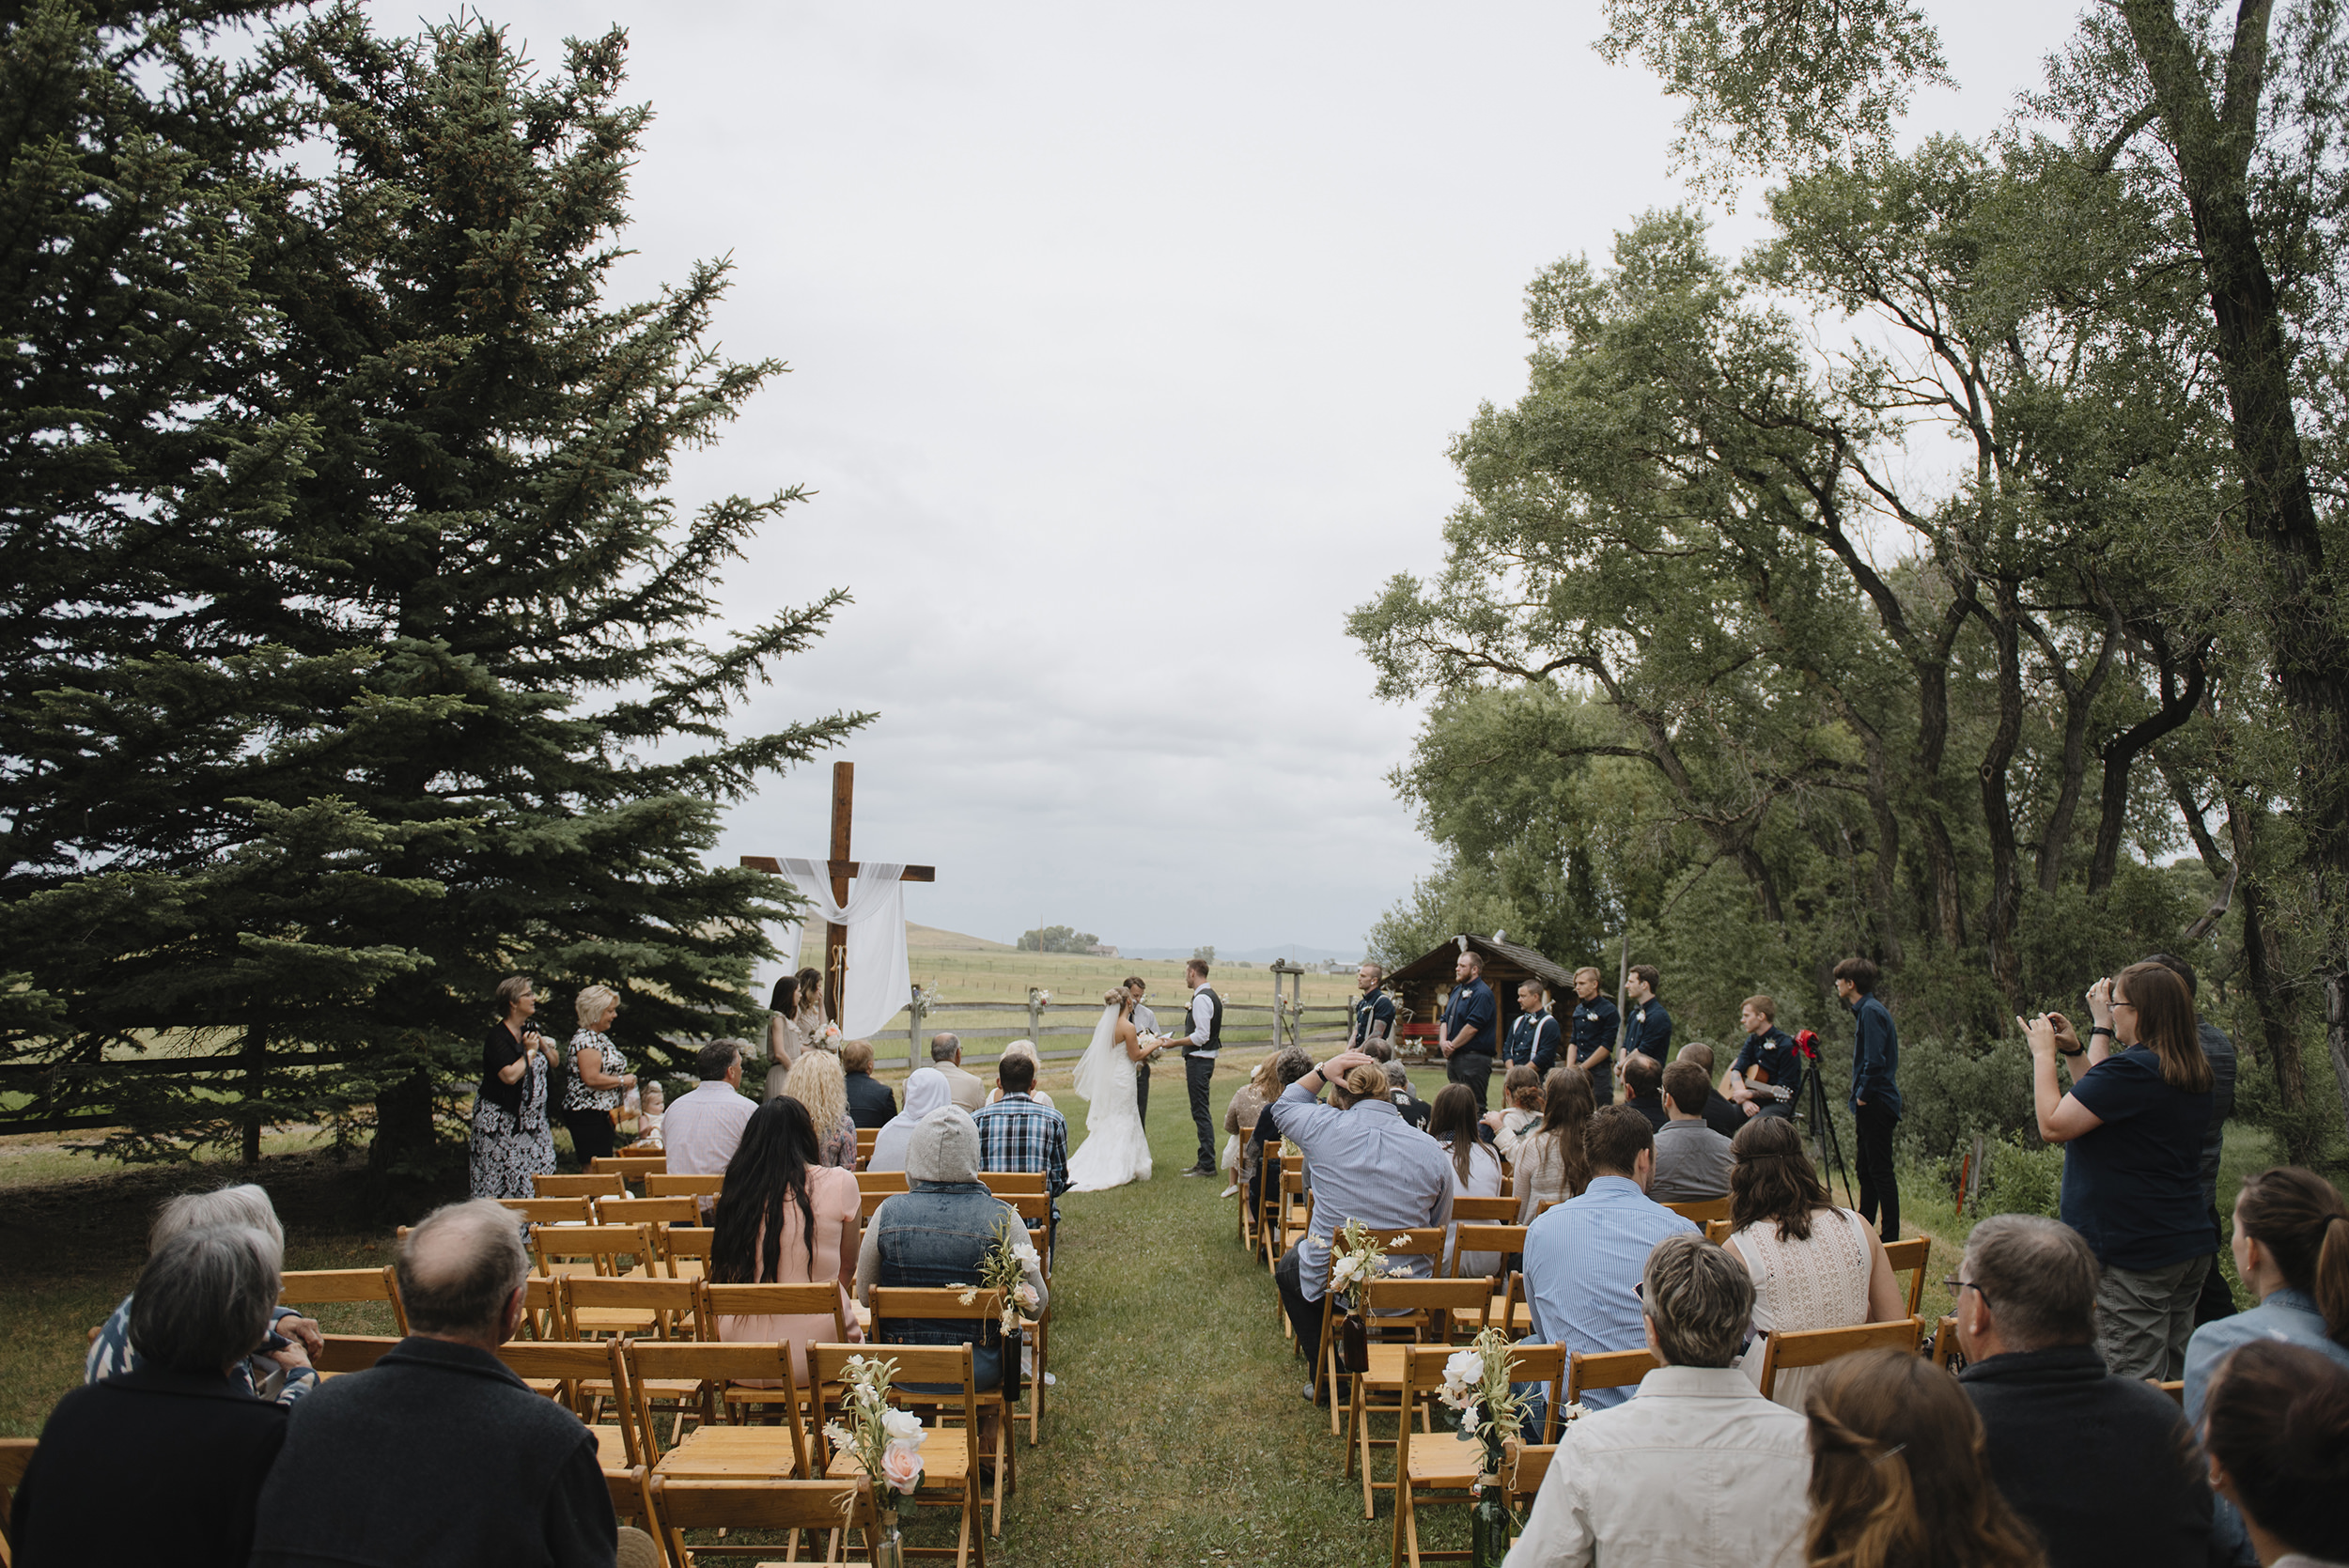 Colby-and-Jess-Intimate-Backyard-Wedding-Bozeman-Montana380.jpg